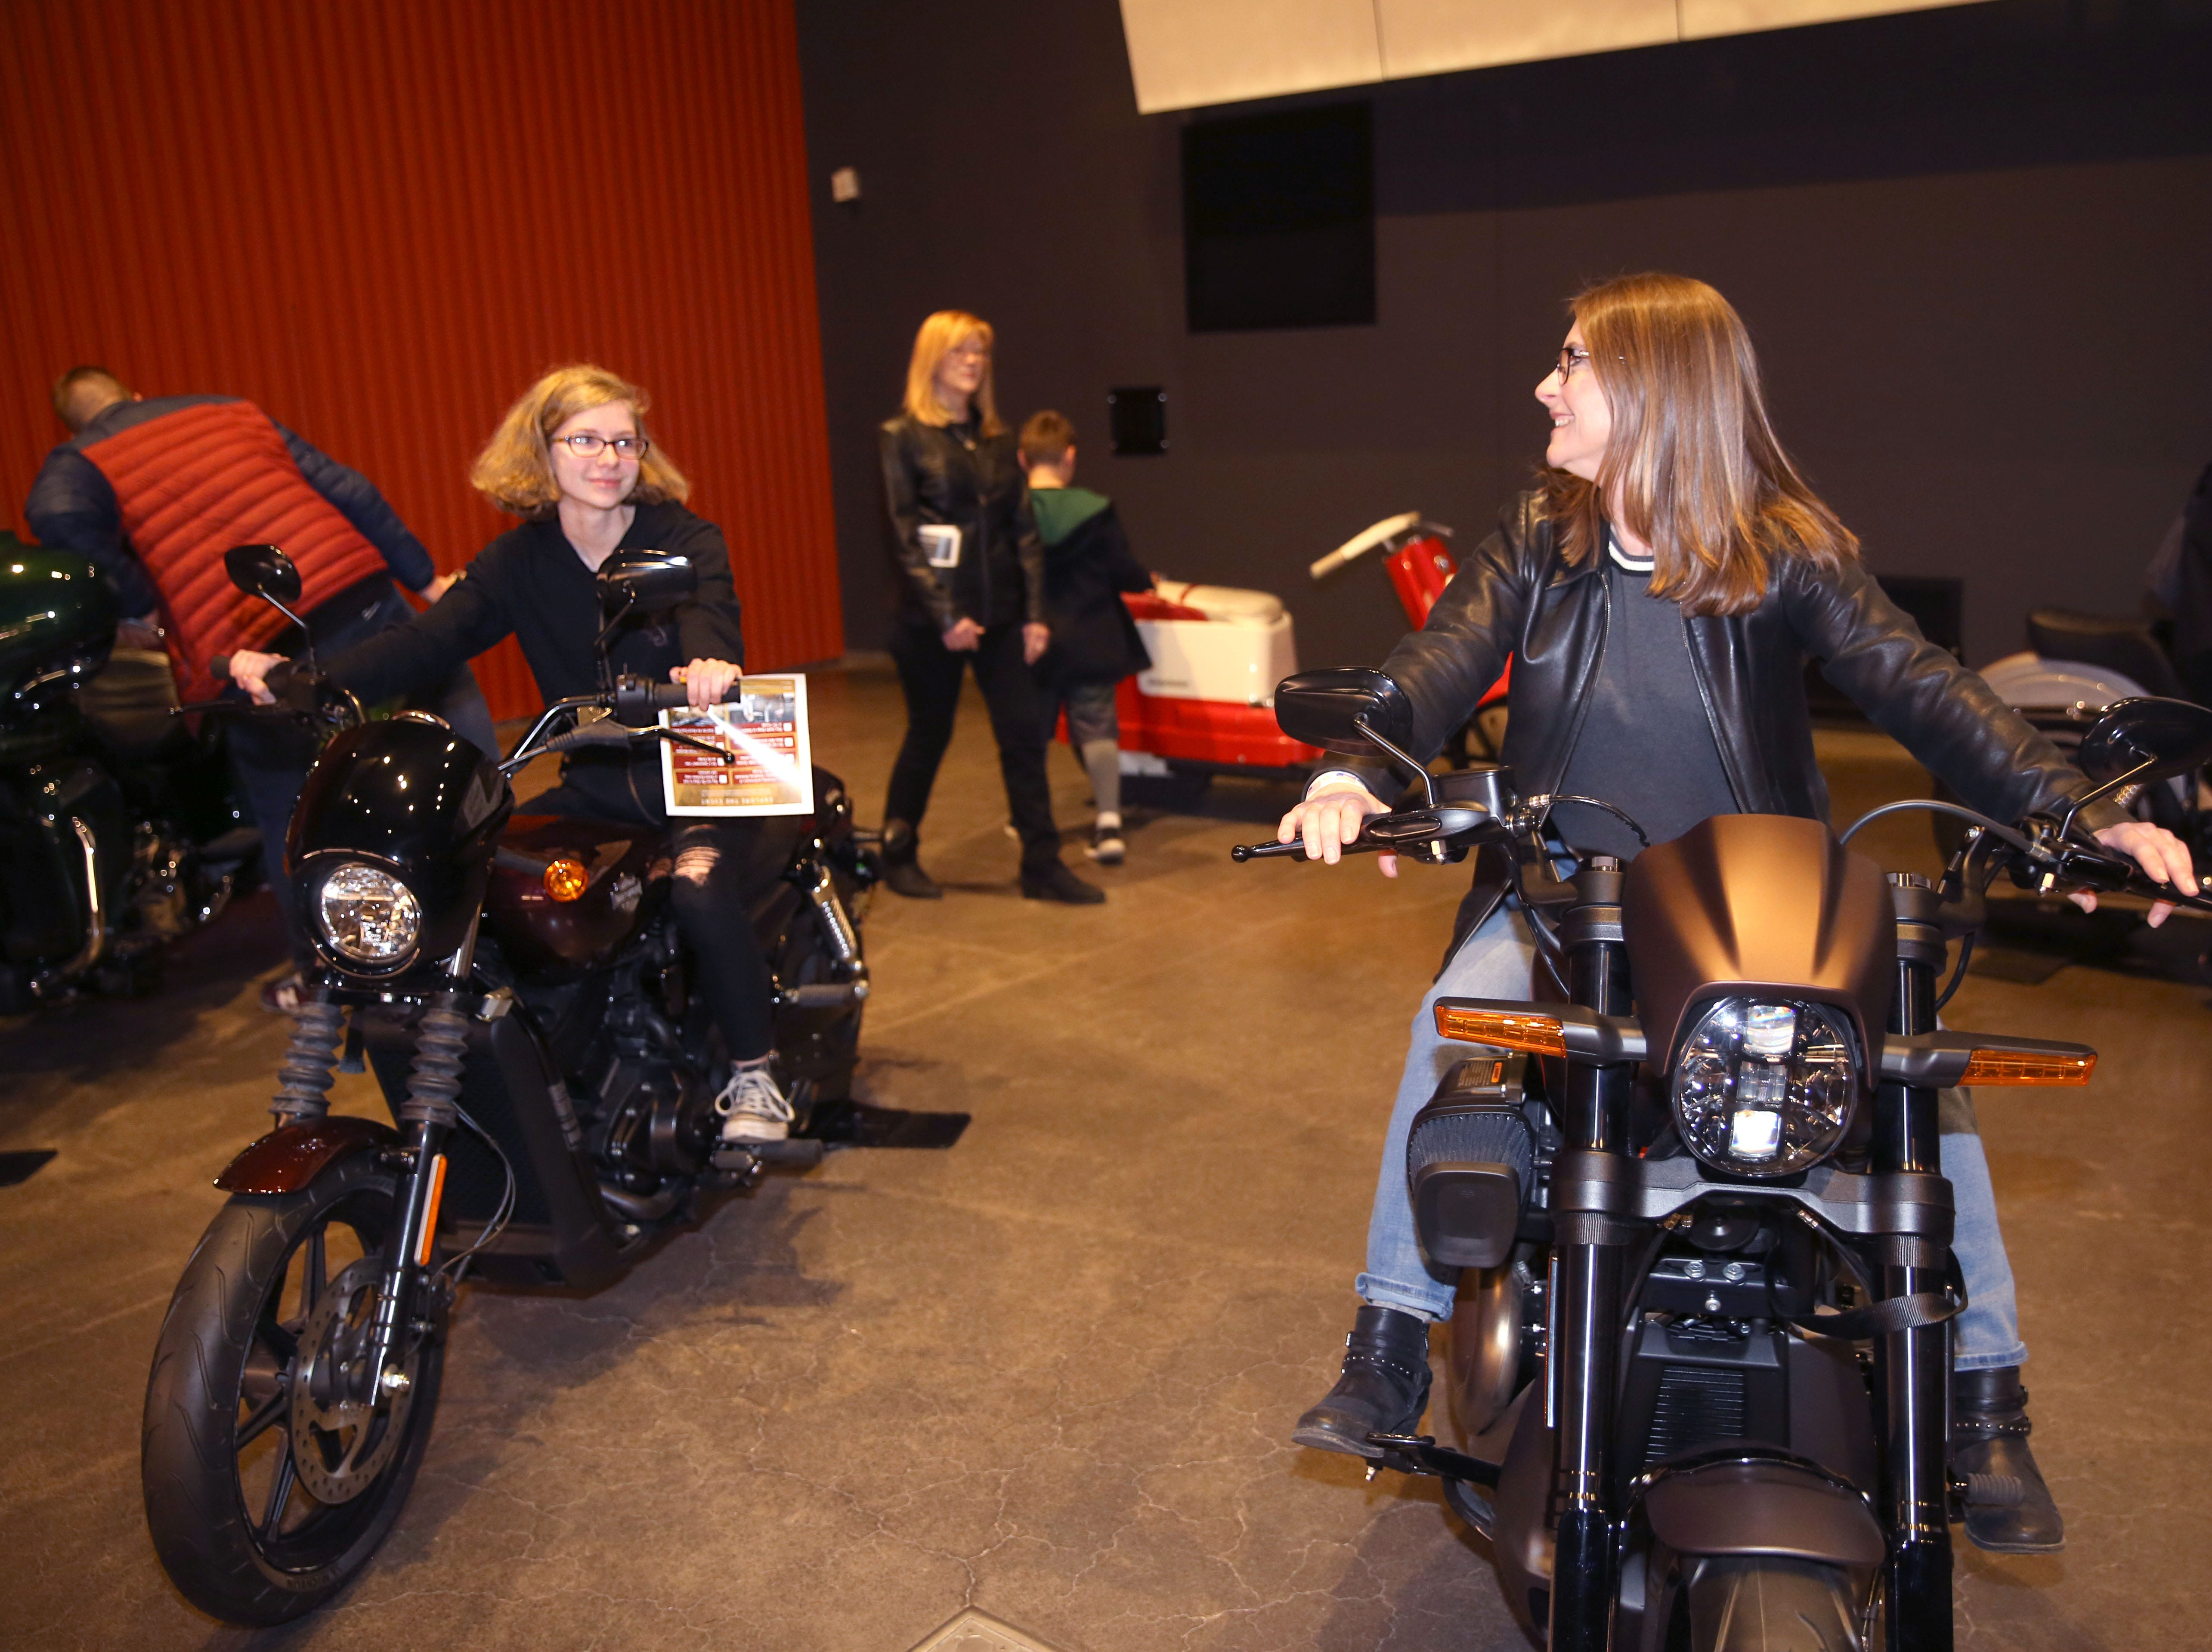 Secret Symphony concertgoers Alexandra Robertson (left) and her mother Robin Robertson try out motorcycles before the Milwaukee Symphony's performance at the Harley-Davidson Museum Sunday.